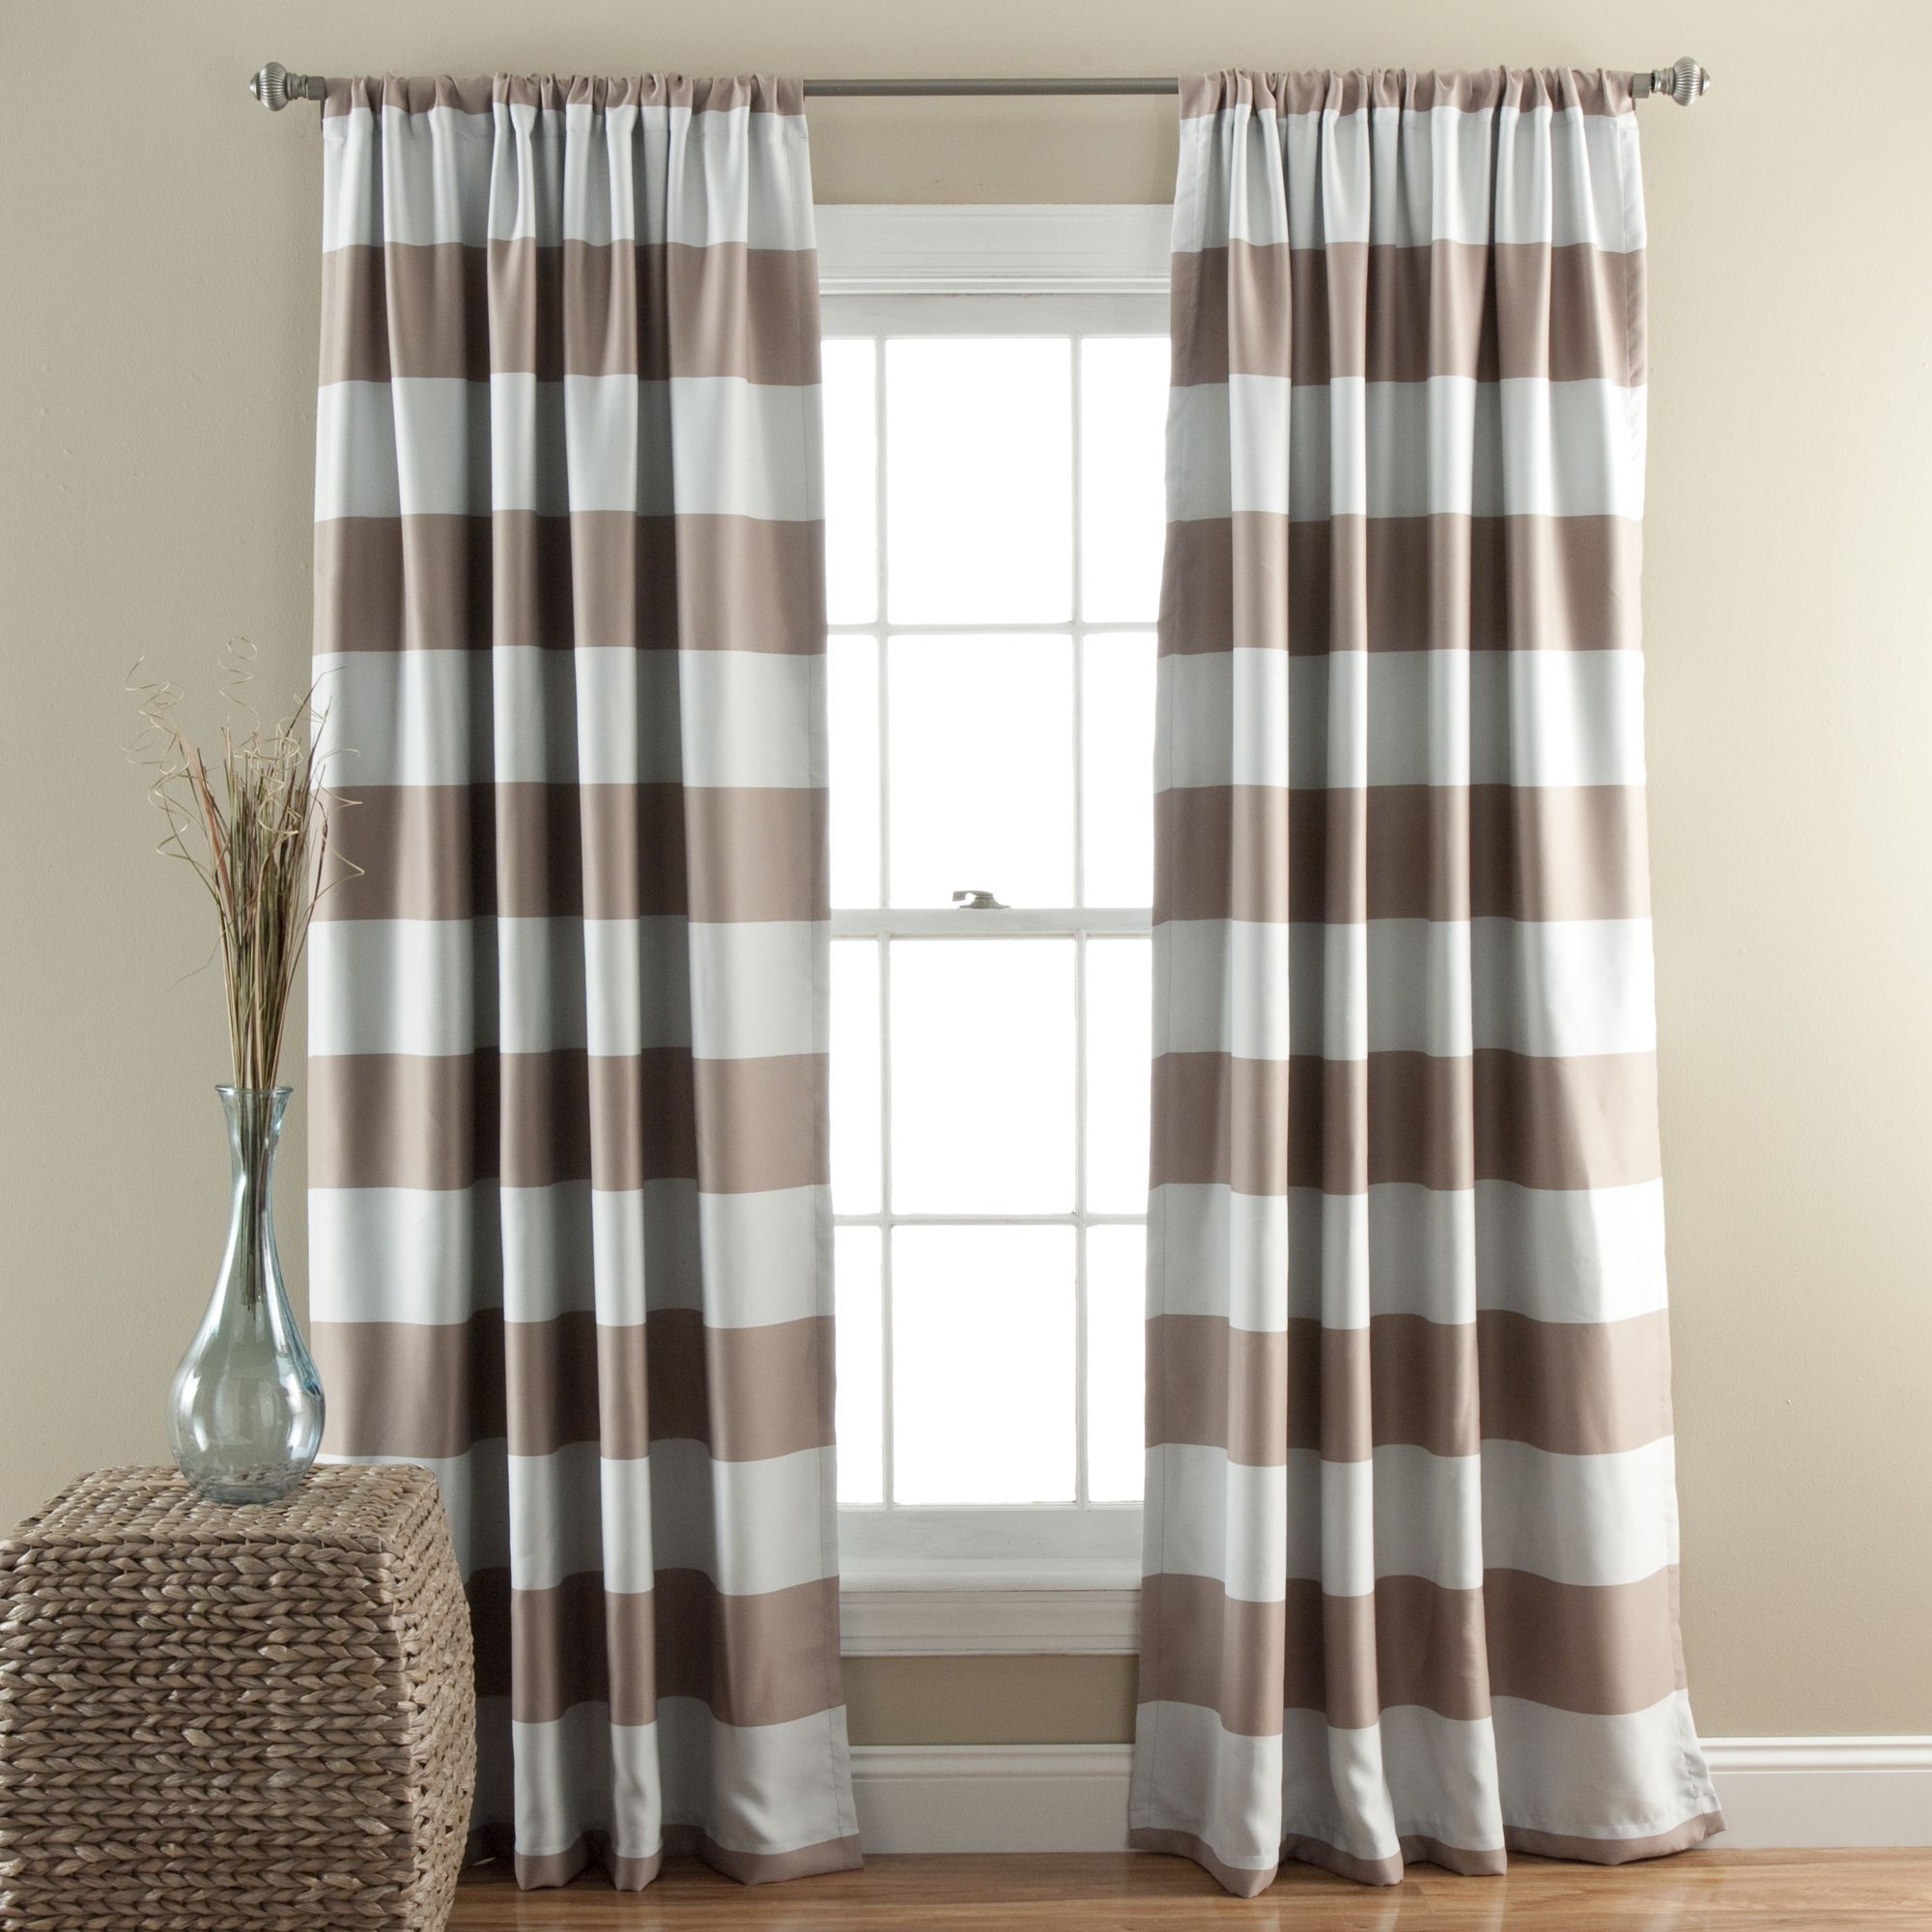 Lush Decor Horizontal Stripe Blackout 84 Inch Curtain Panel Pair